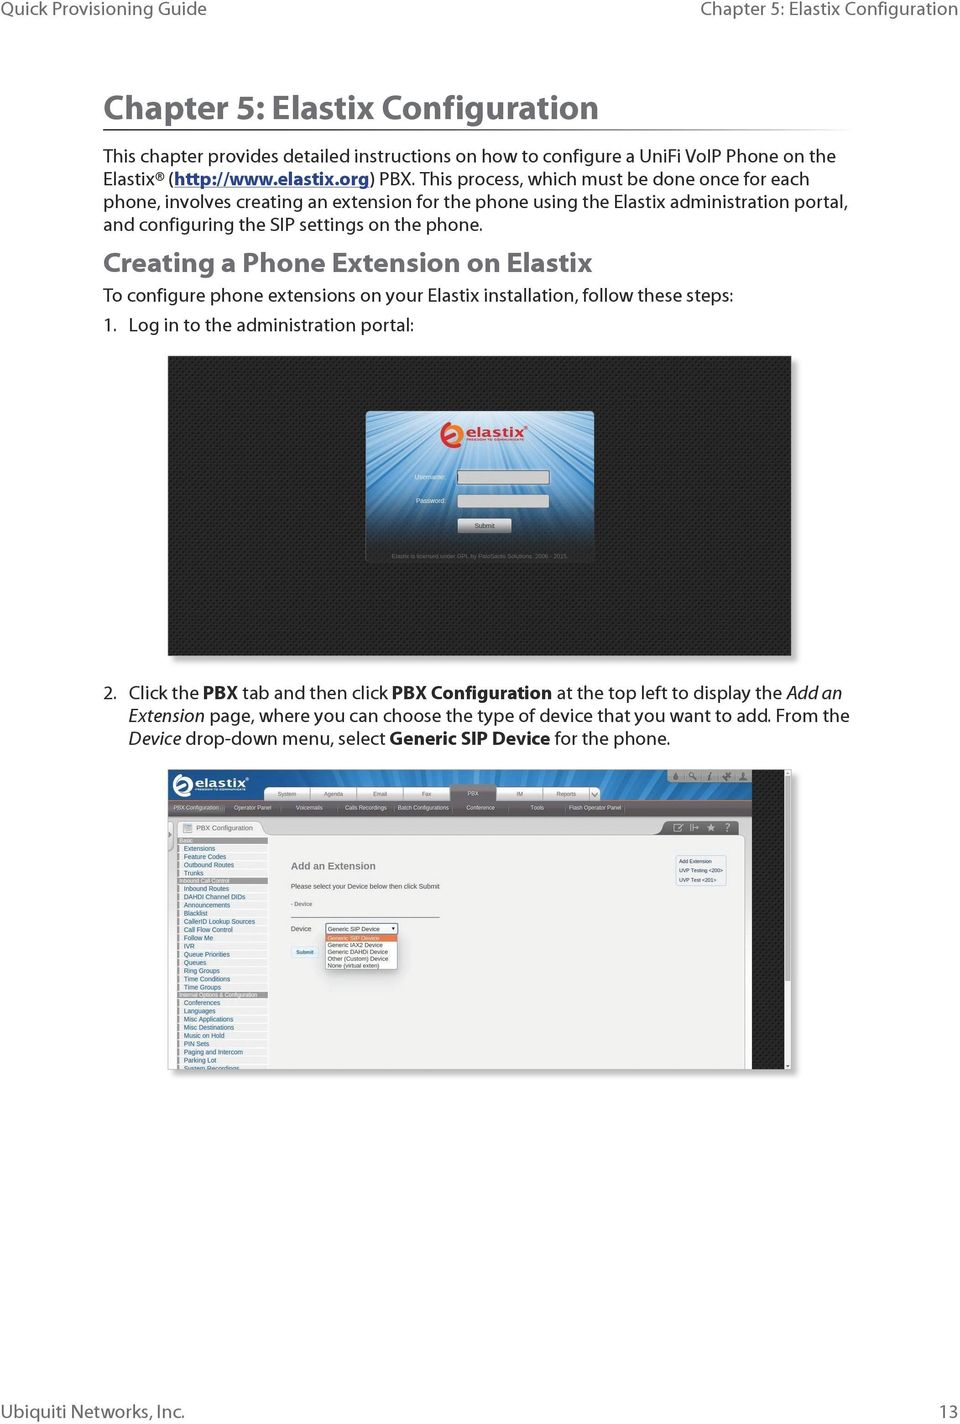 This process, which must be done once for each phone, involves creating an extension for the phone using the Elastix administration portal, and configuring the SIP settings on the phone.